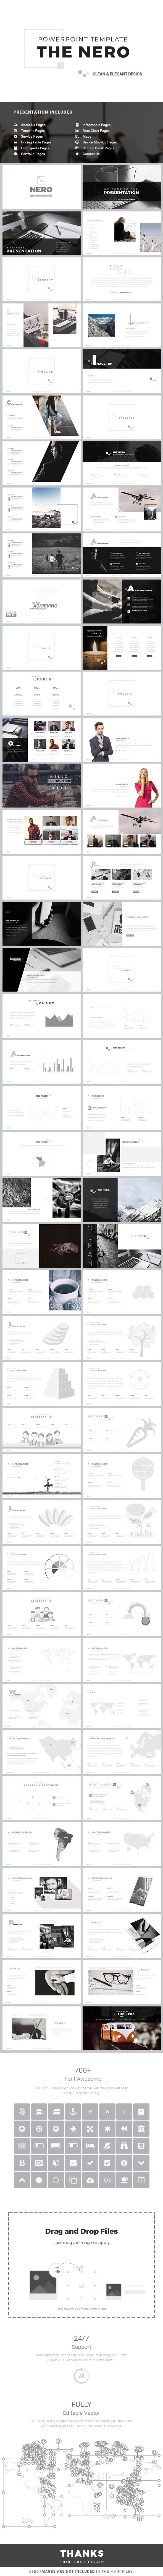 NERO - Powerpoint Template • Only available here! → https://graphicriver.net/item/nero-powerpoint-template/17308699?ref=pxcr